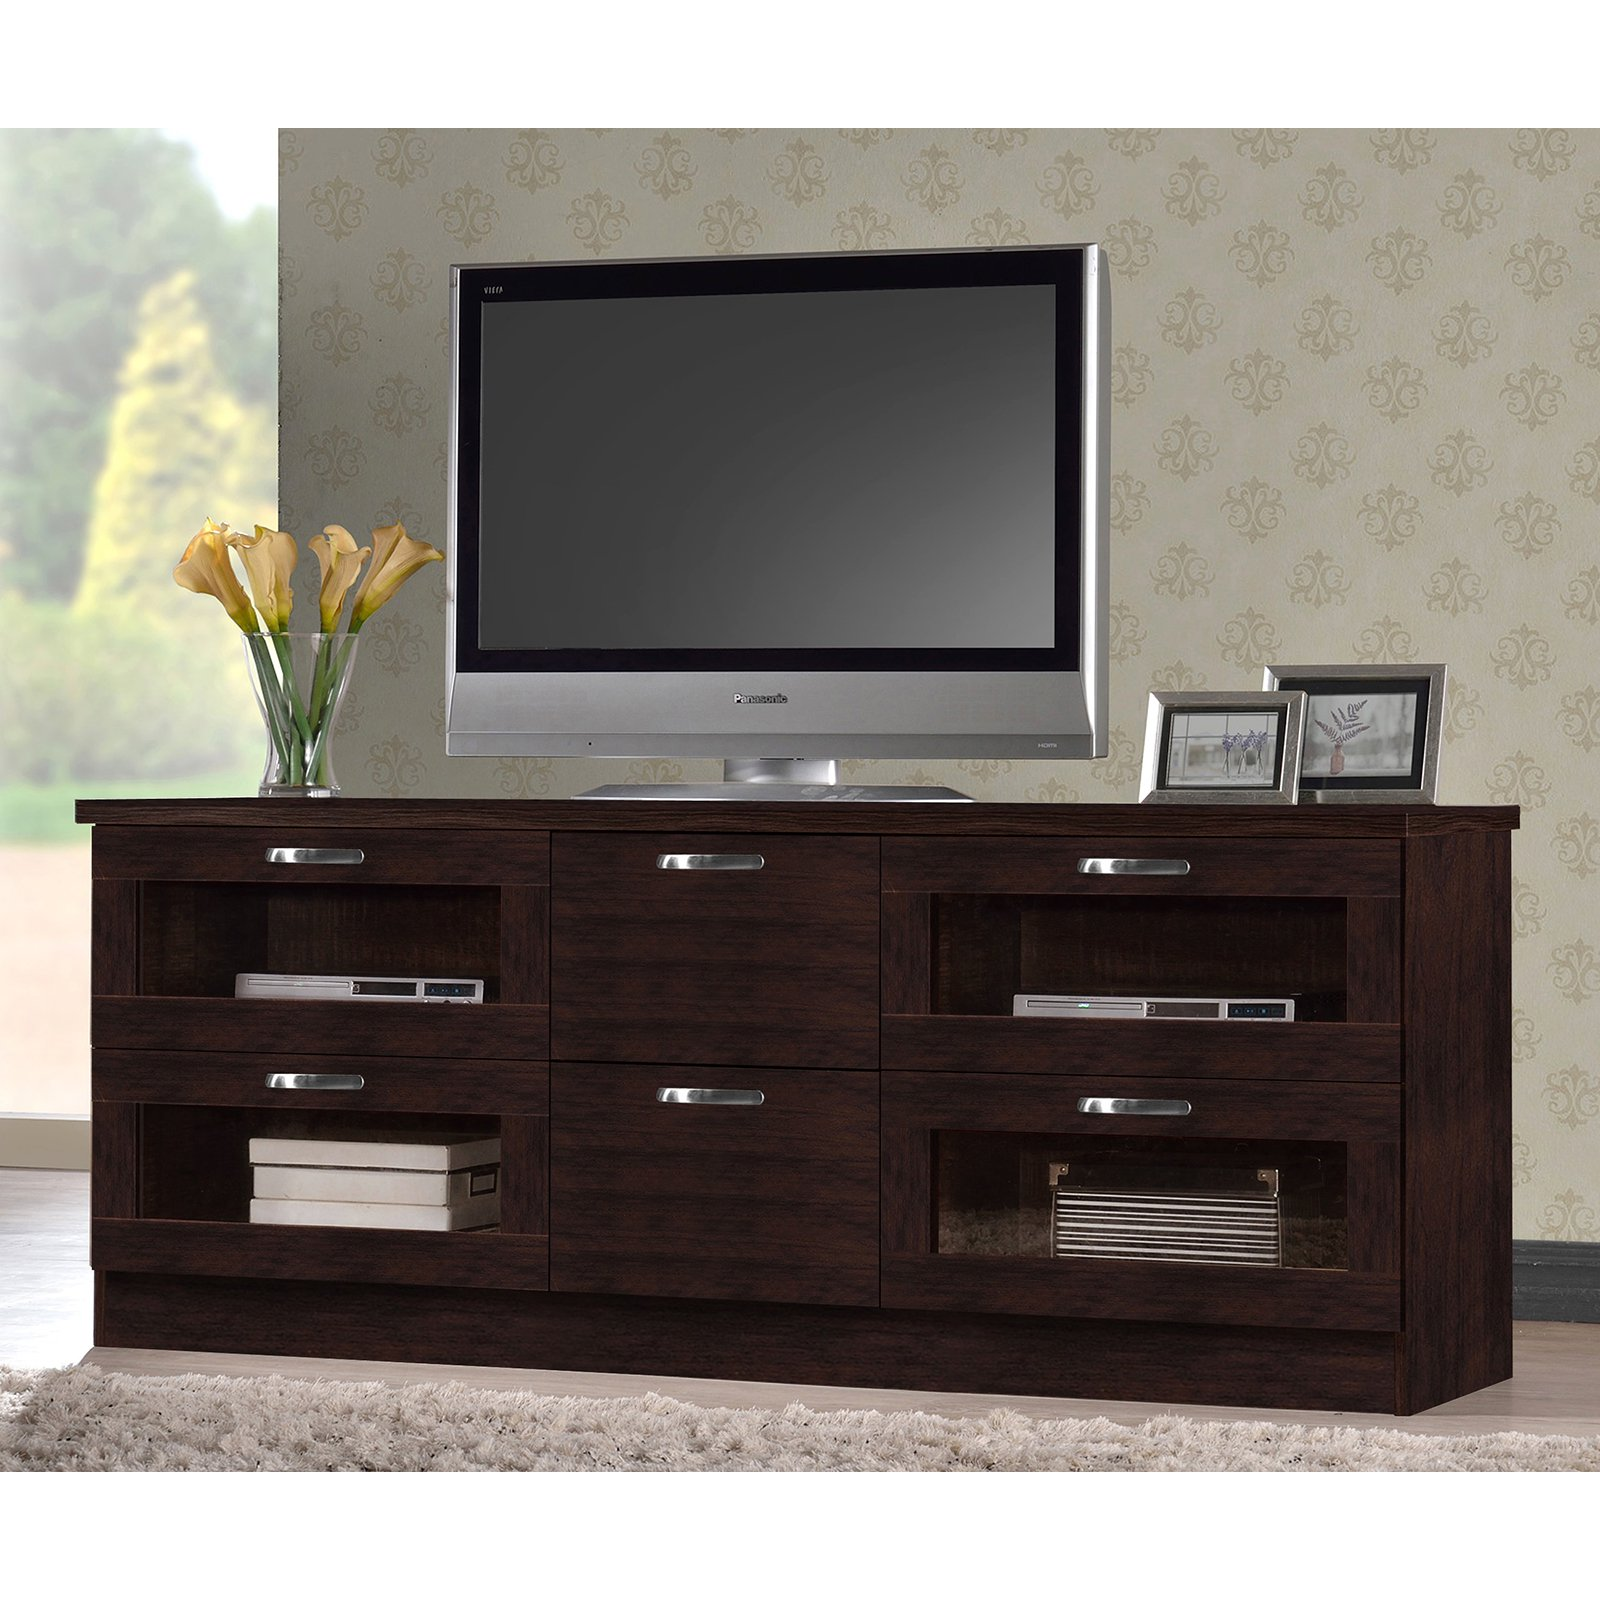 Baxton Studio Adelino 63 Inches Dark Brown Wood TV Cabinet with 4 Glass Doors and 2 Drawers